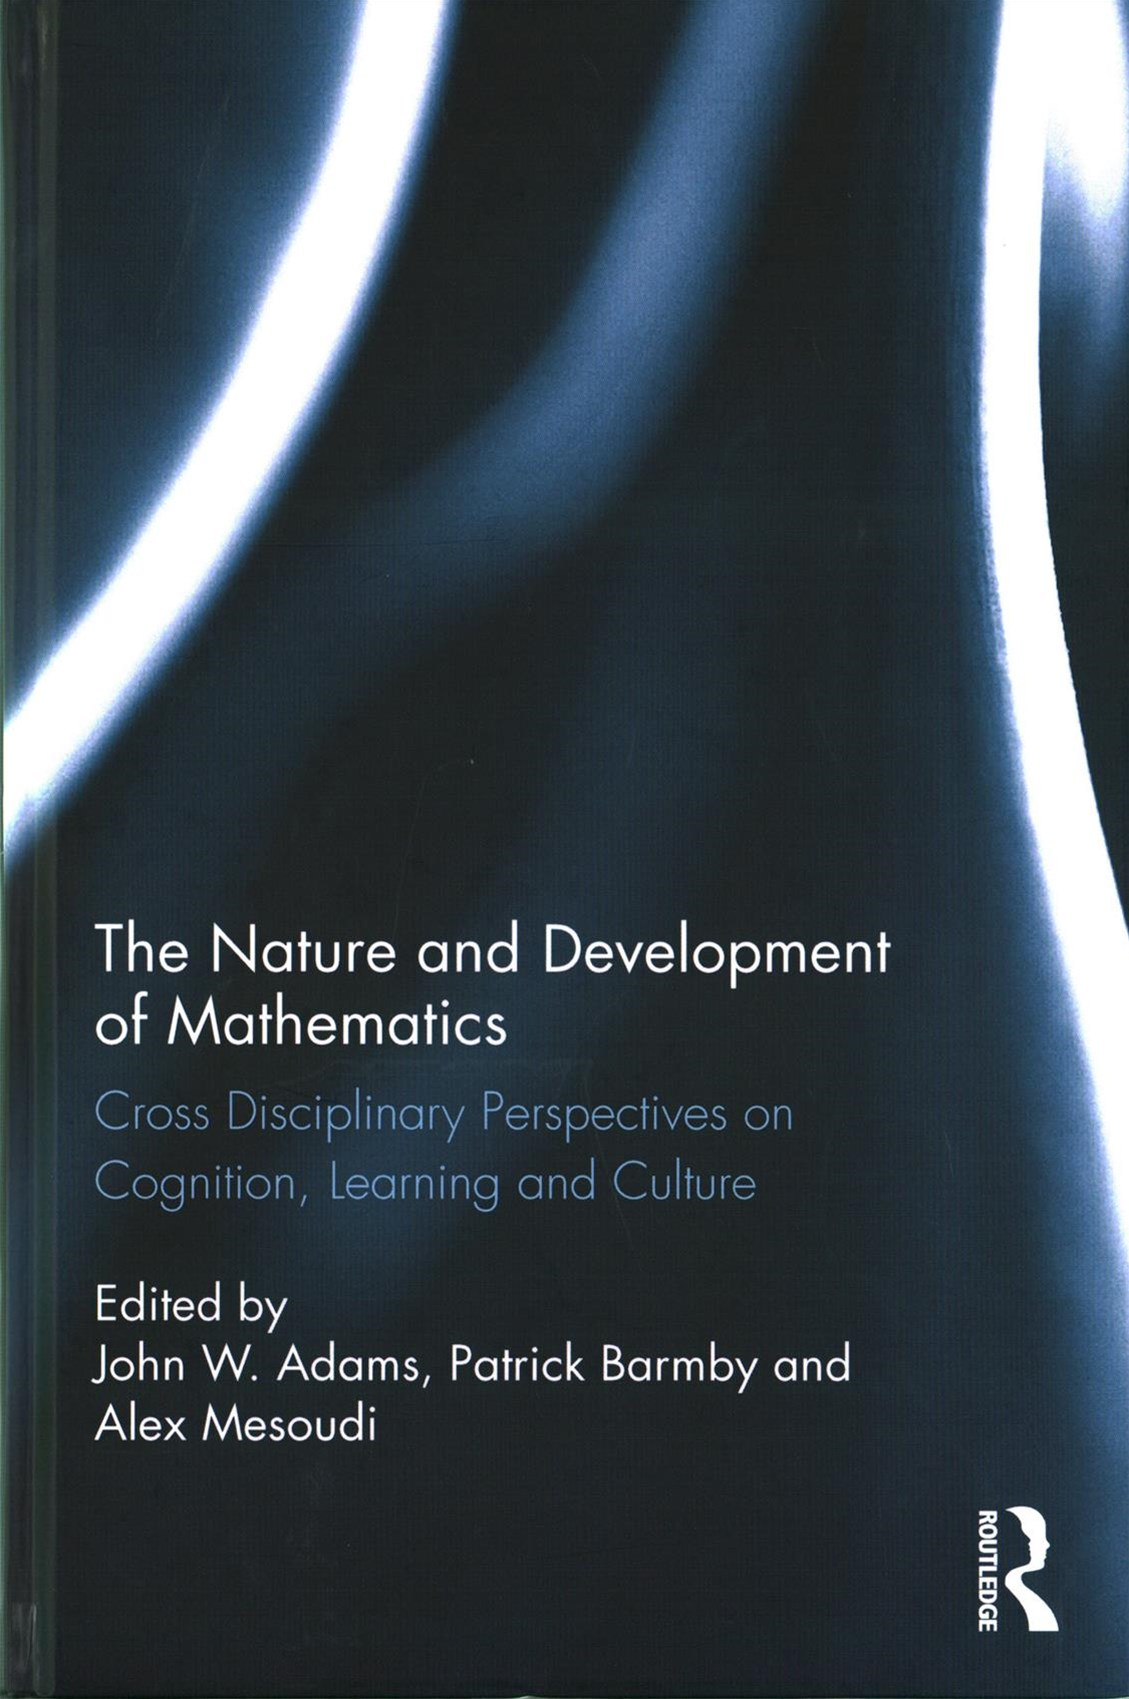 The Nature and Development of Mathematics